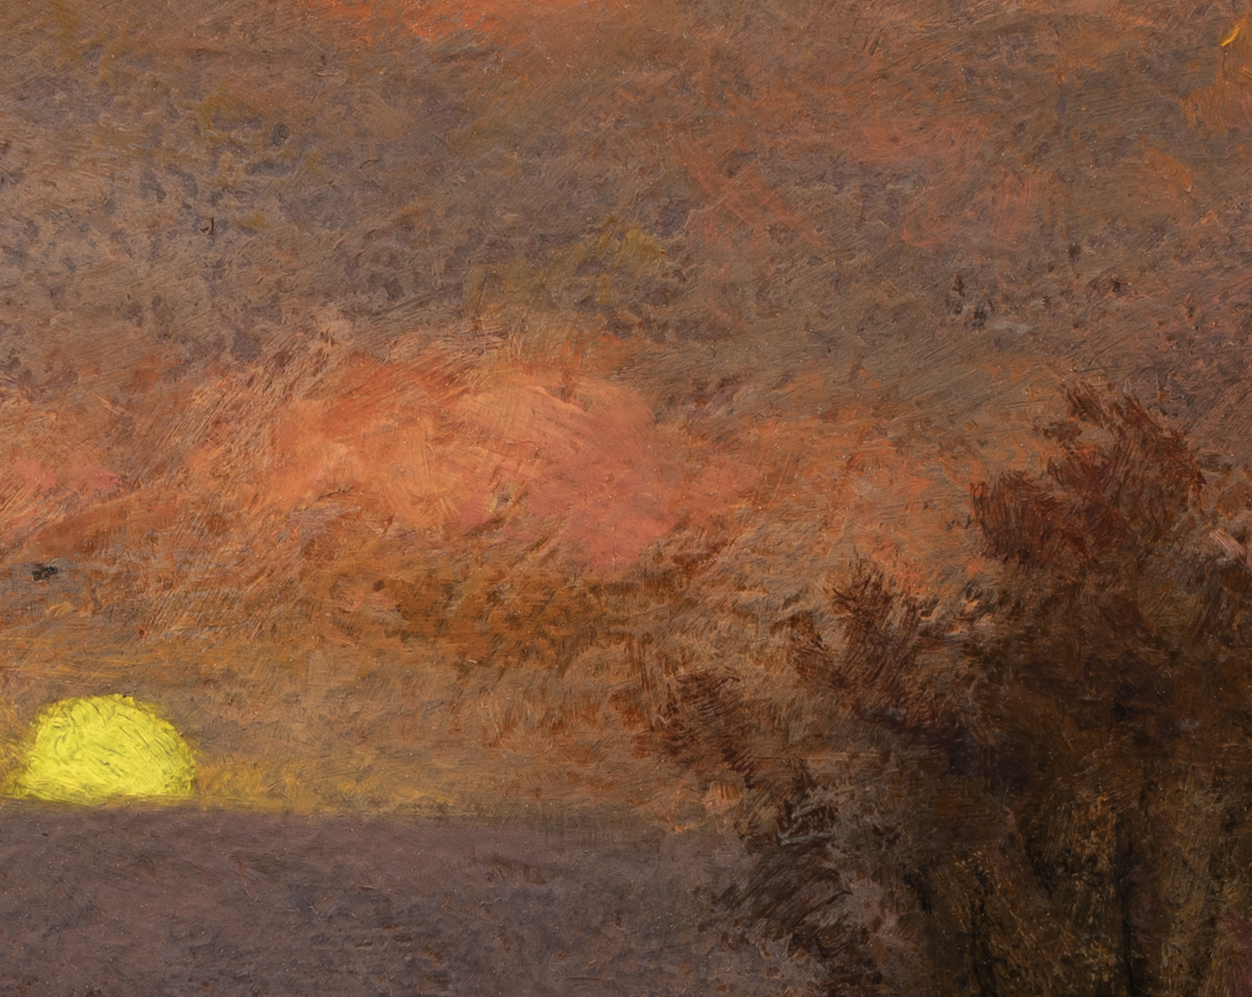 Study after: Edward Wilkins Waite An Autumn Moonrise by M Francis McCarthy - 8x10 (Detail 2)